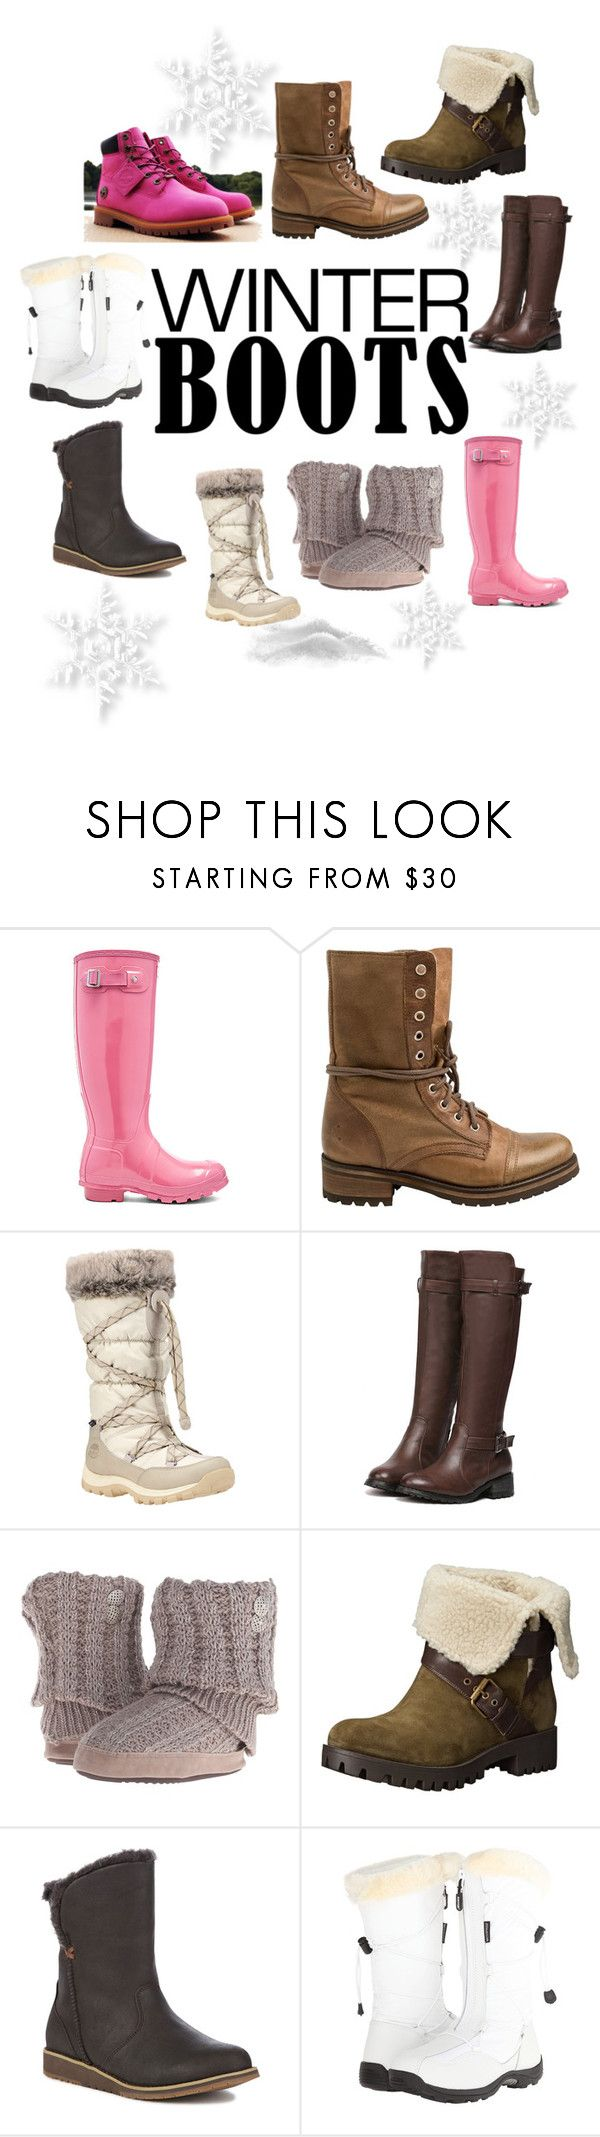 """Winter Boots"" by poppys-crafts ❤ liked on Polyvore featuring Timberland, Hunter, Steve Madden, Muk Luks, Nine West, Emu, Baffin and winterboots"